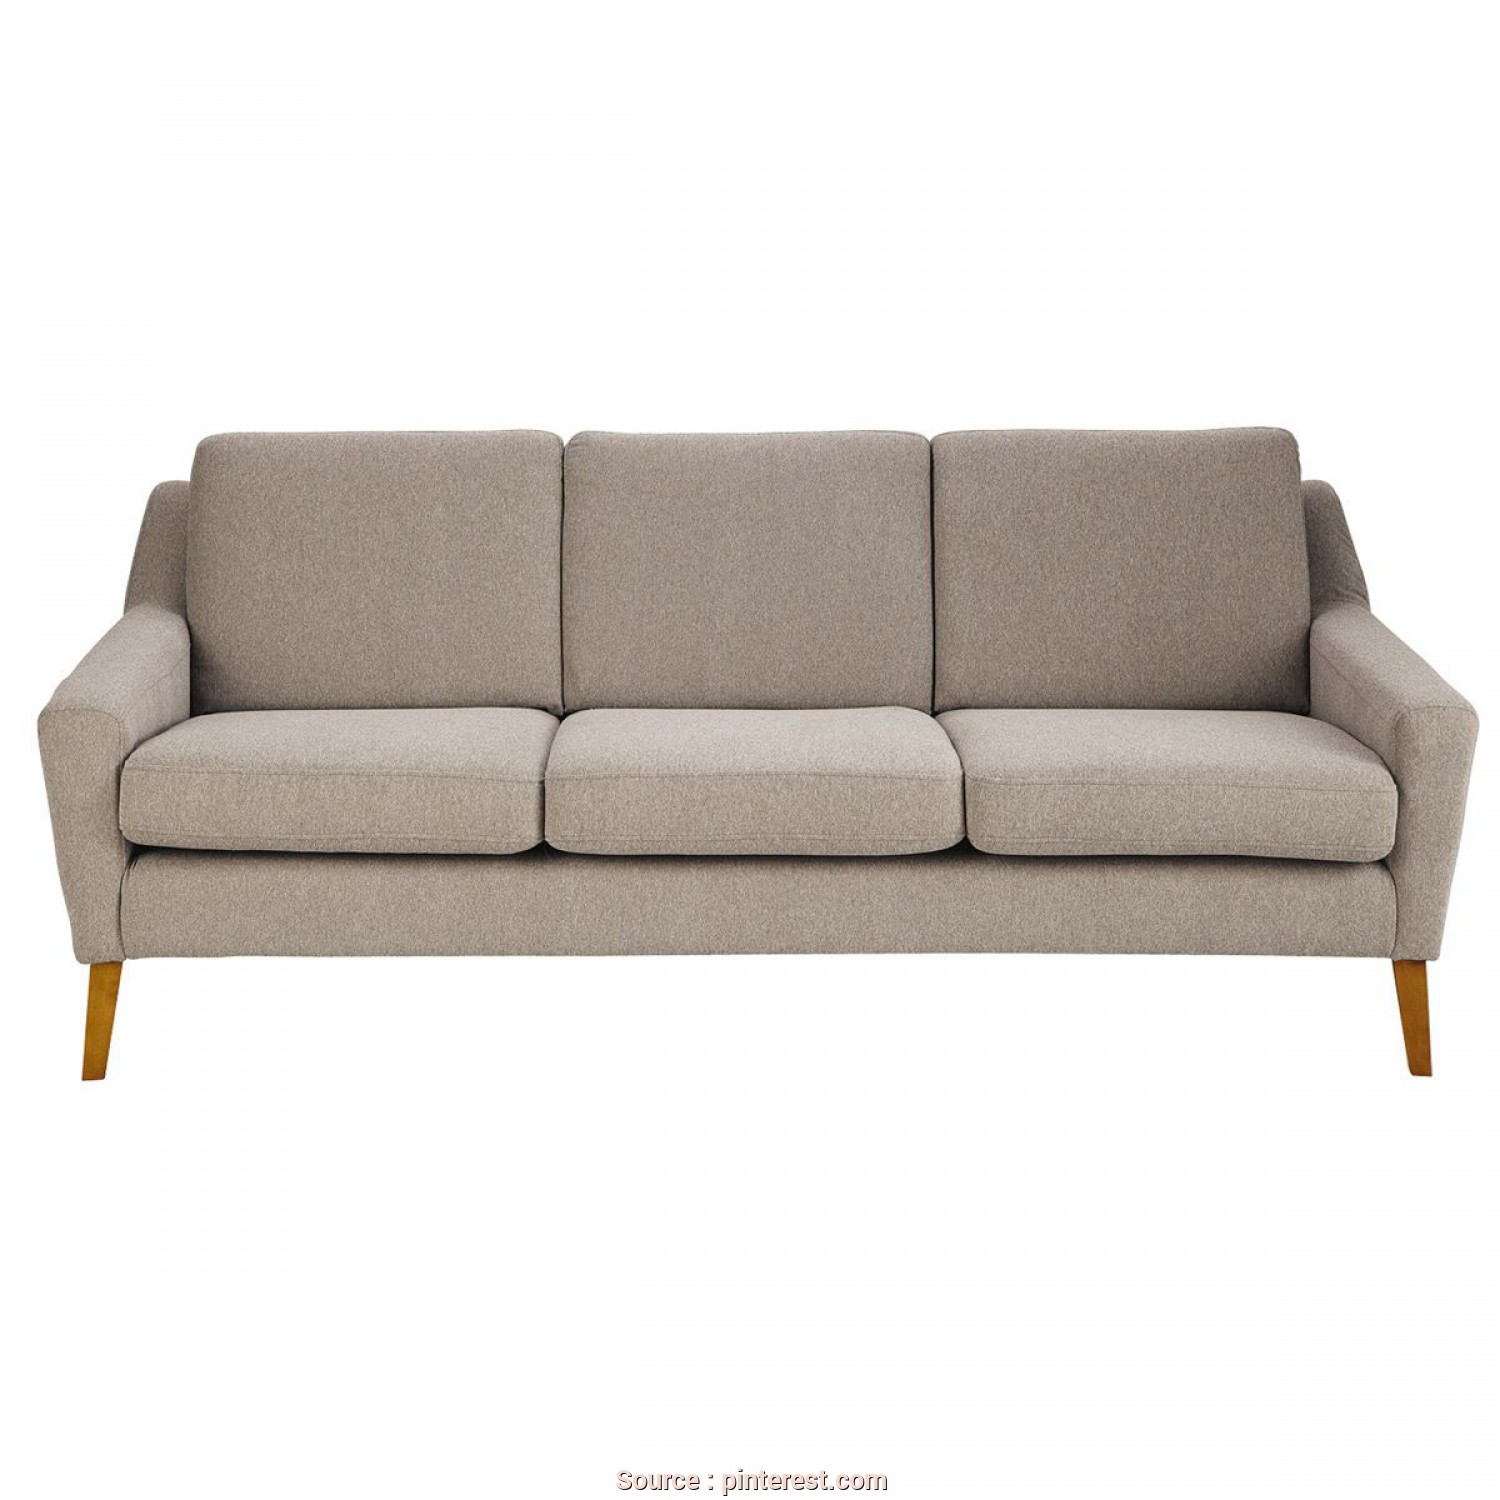 Divano Chesterfield Conforama, Divertente MAISONS DU MONDE, Sofa 3-Sitzer Linara Kittfarben, Men, In En